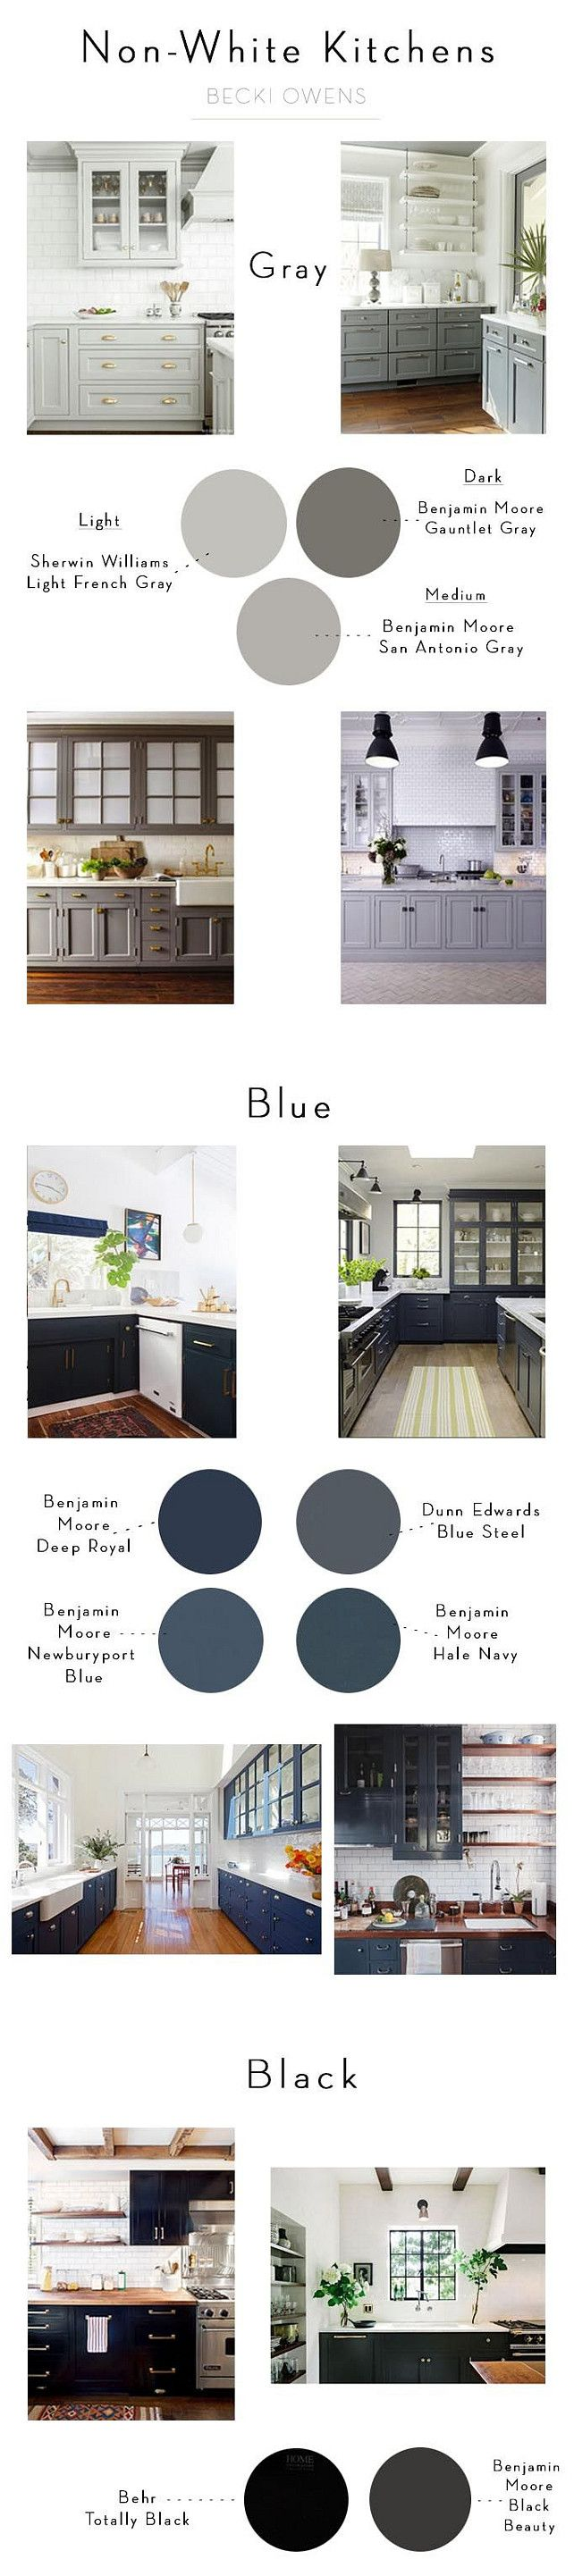 25 best sherwin williams cabinet paint ideas on pinterest non white kitchen paint color suggestions non white kitchen paint color ideas